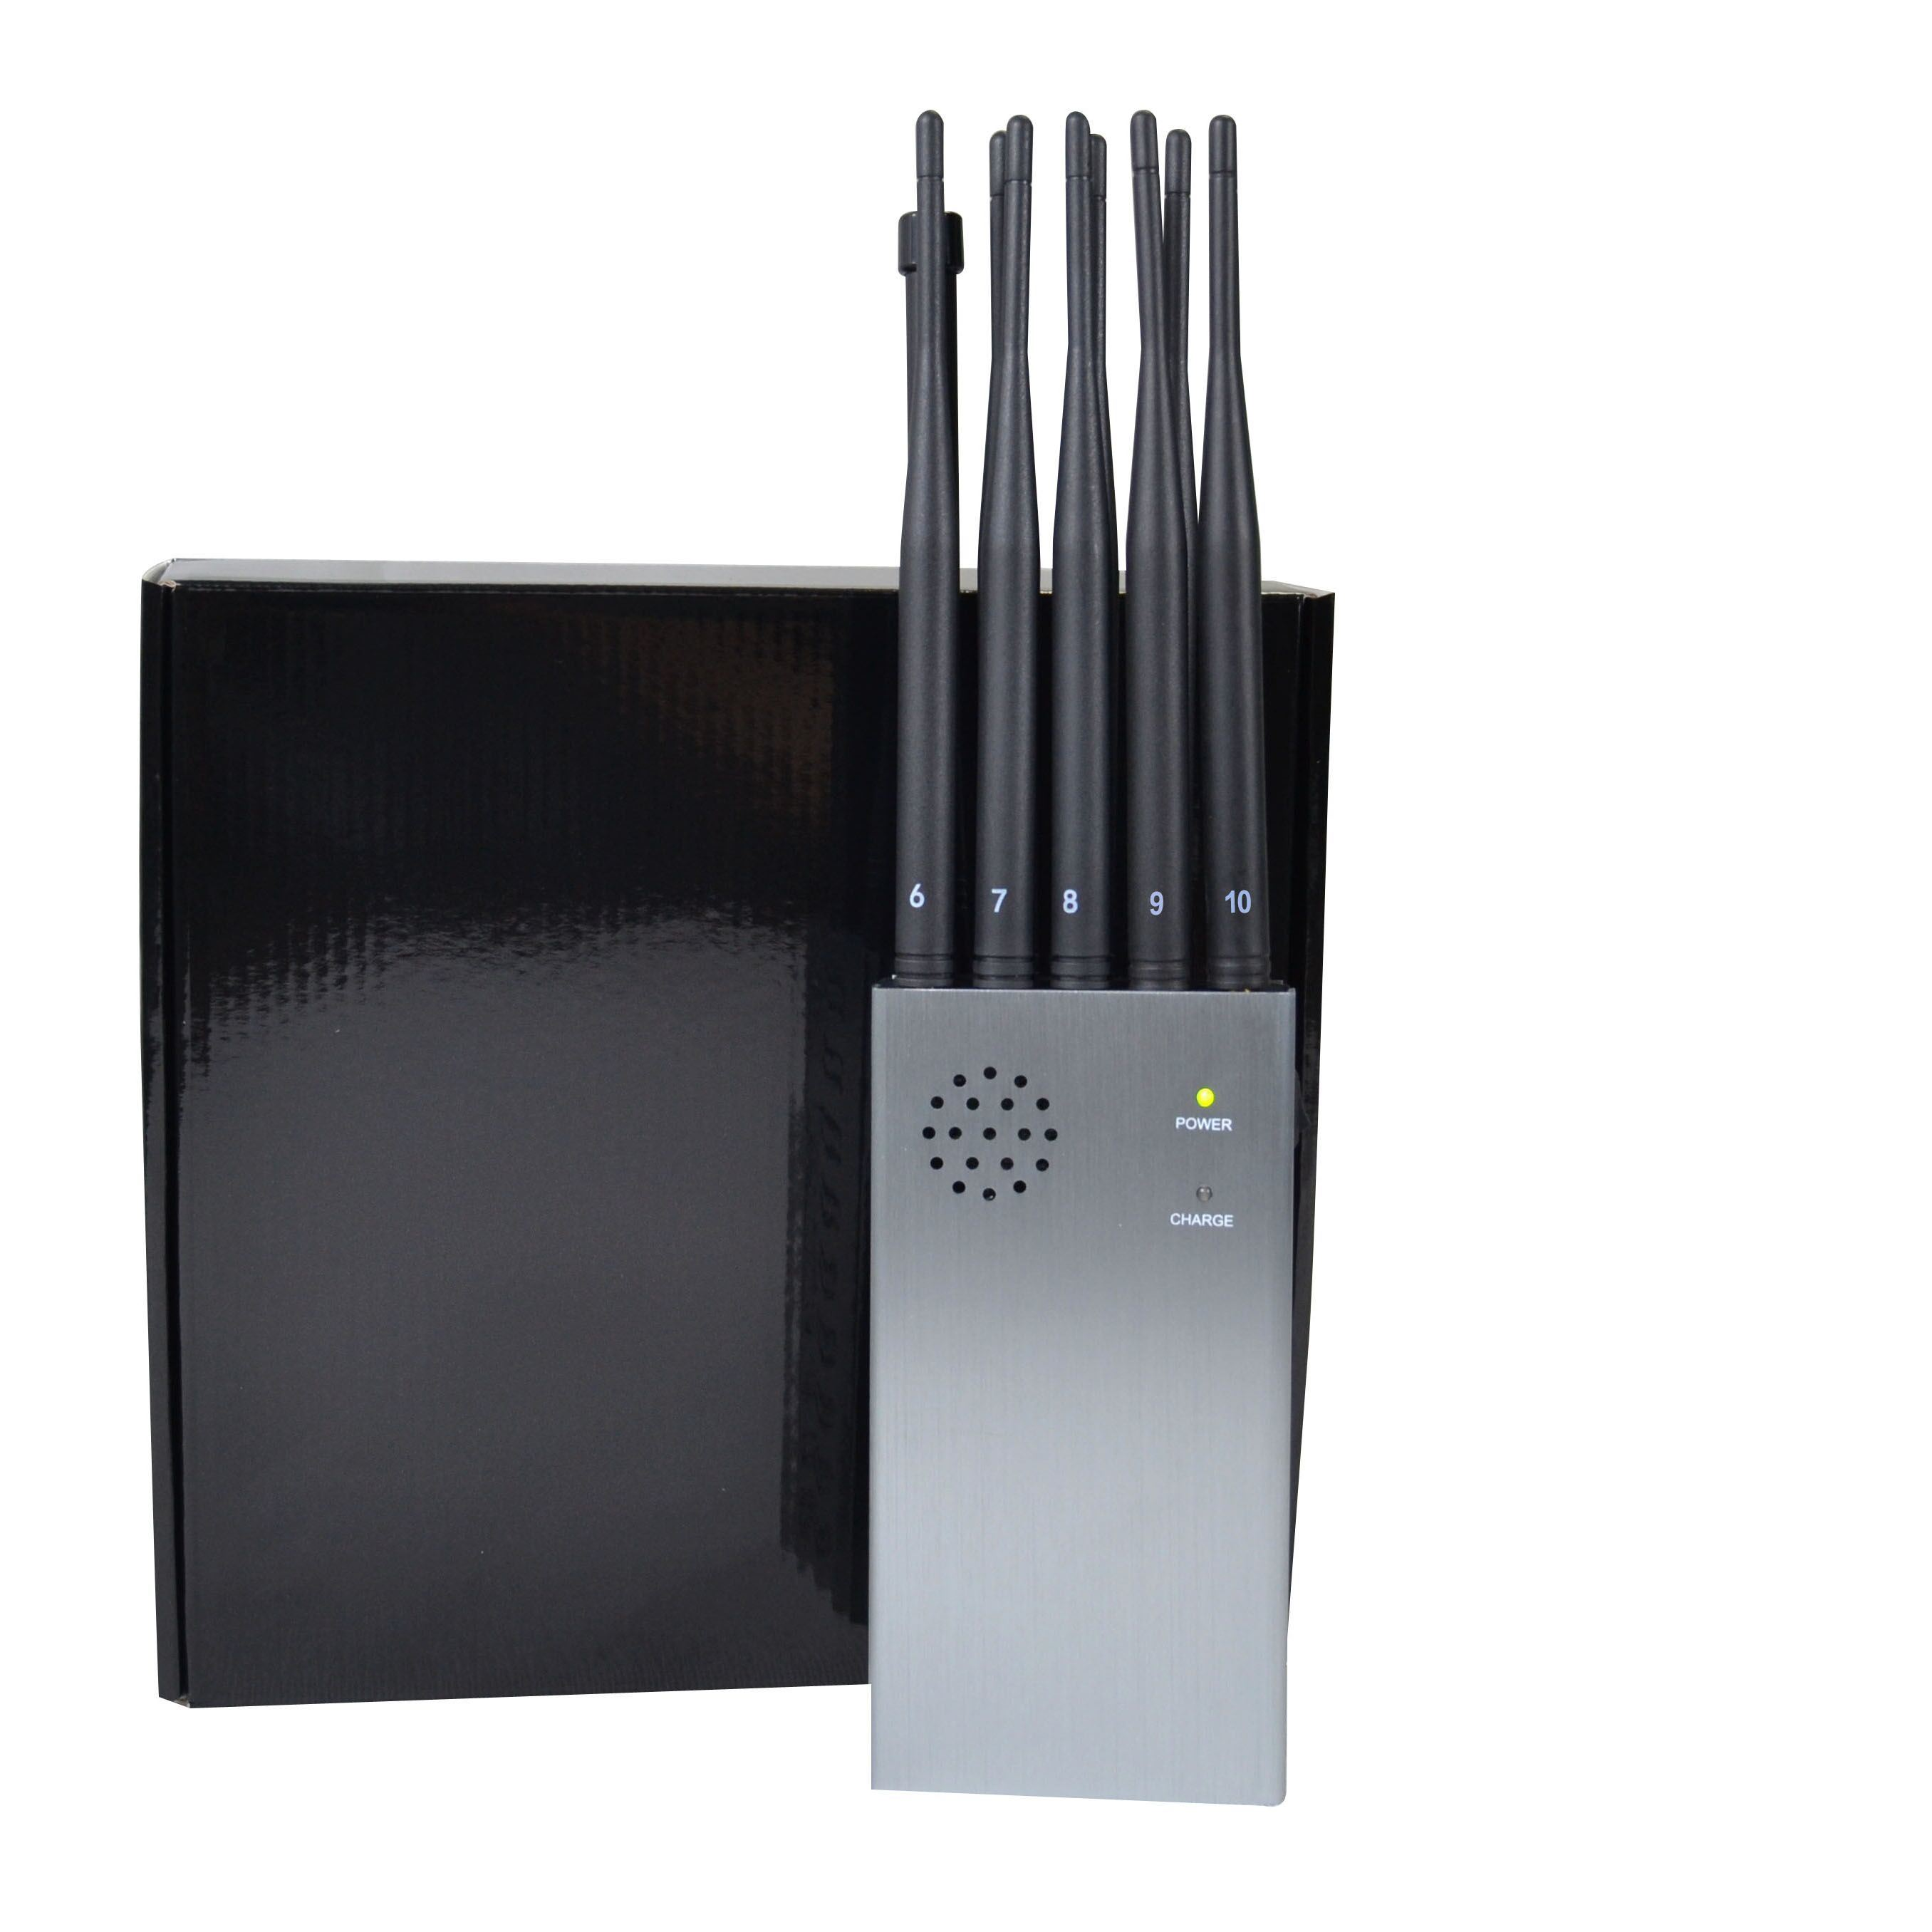 phone jammers india visit - China High Power up to 8000mA Battery Portable Jammer for Military Using Including Lojack, 3G 4G 2g 5g Remote Control GPS Signals - China 8000mA Battery Jammer, Large Volume Power Signal Blocker